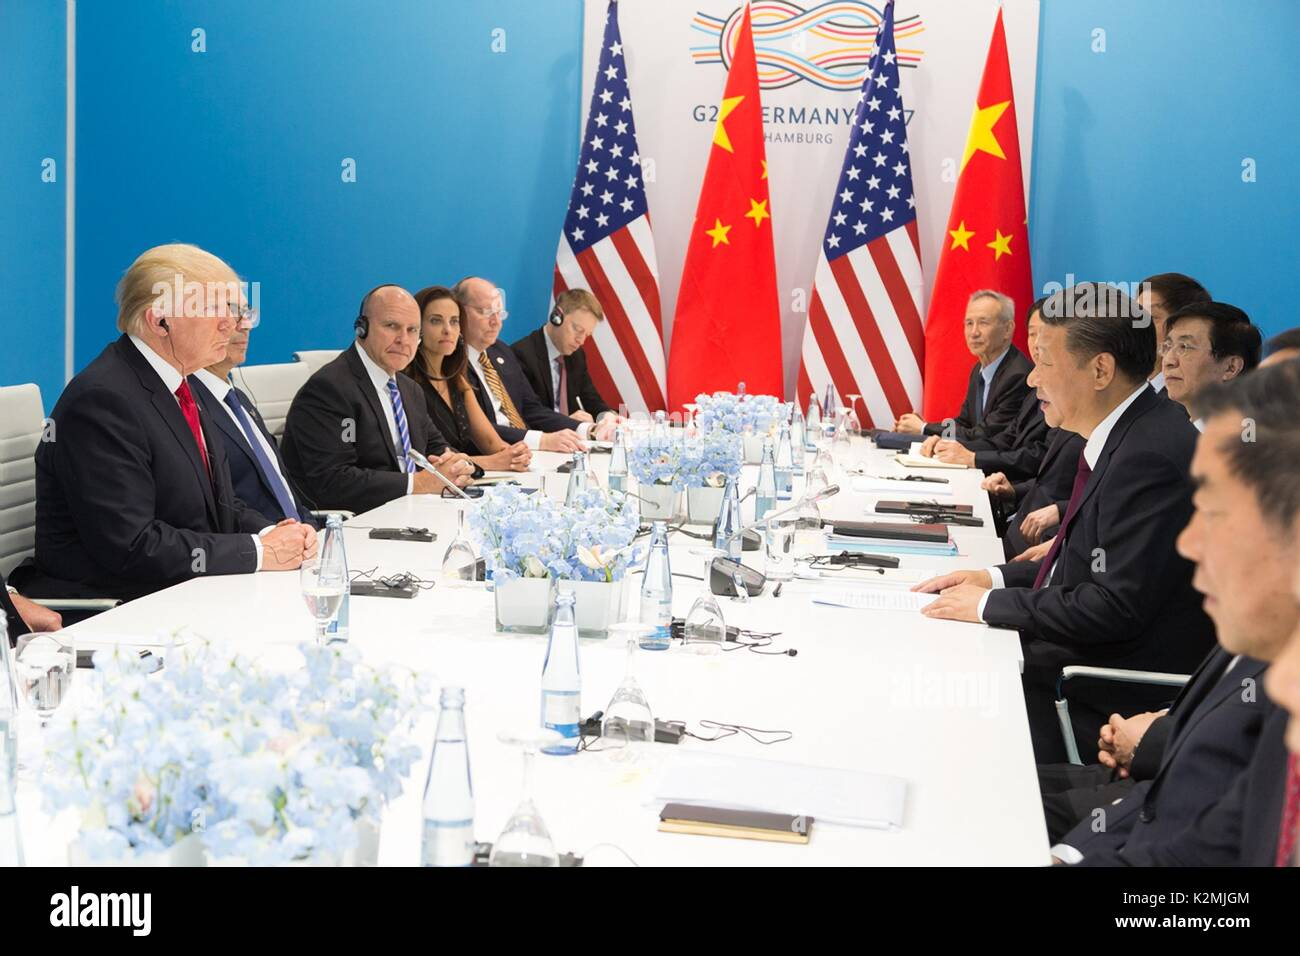 U.S. President Donald Trump during a bilateral meeting with Chinese President Xi Jinping on the sidelines of the G20 Summit July 8, 2017 in Hamburg, Germany. - Stock Image